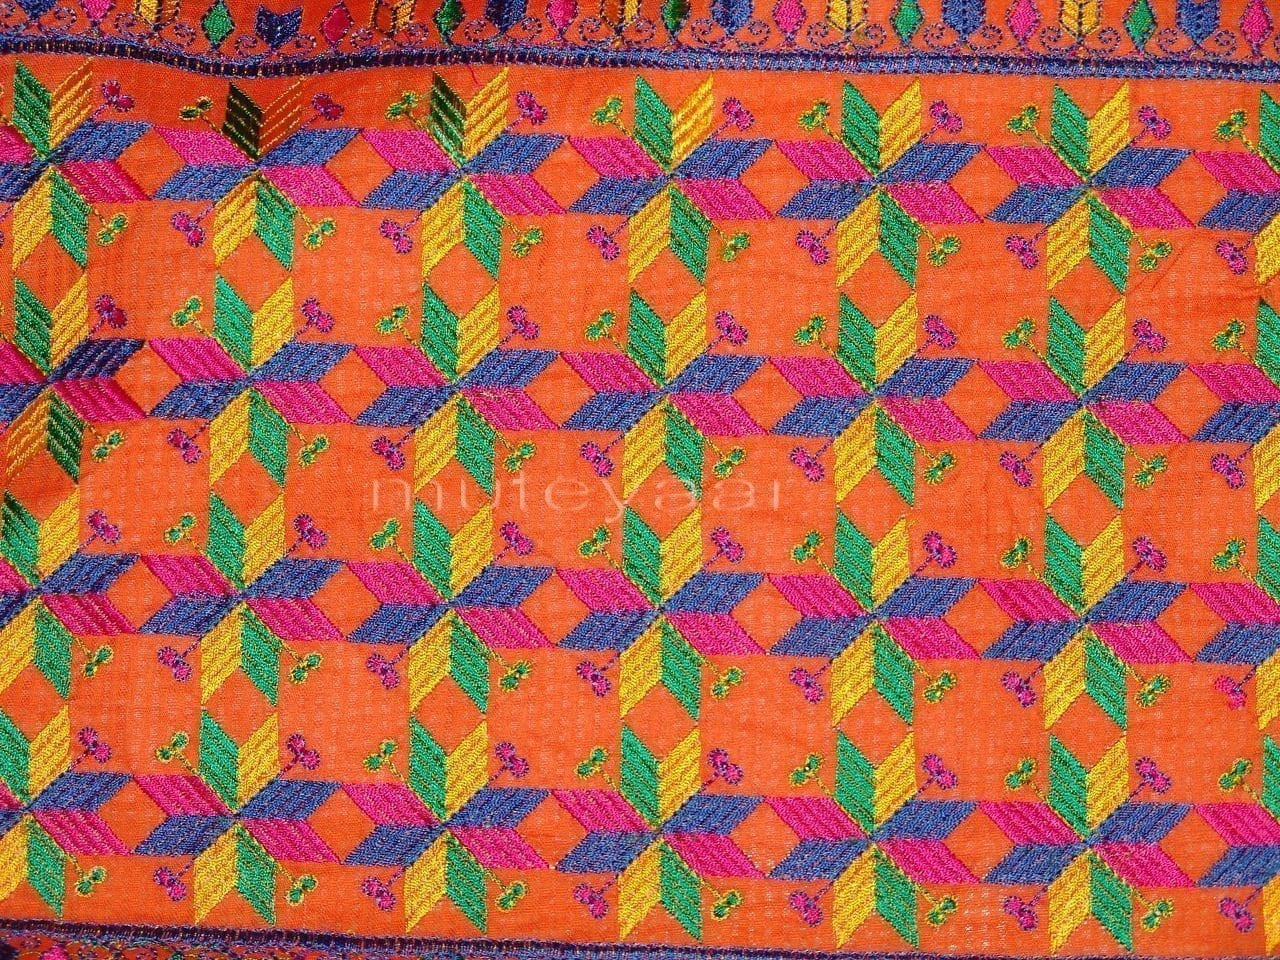 Cotton M/C EMBR. PHULKARI suit PURE CHINON DUPATTA  F0640 3